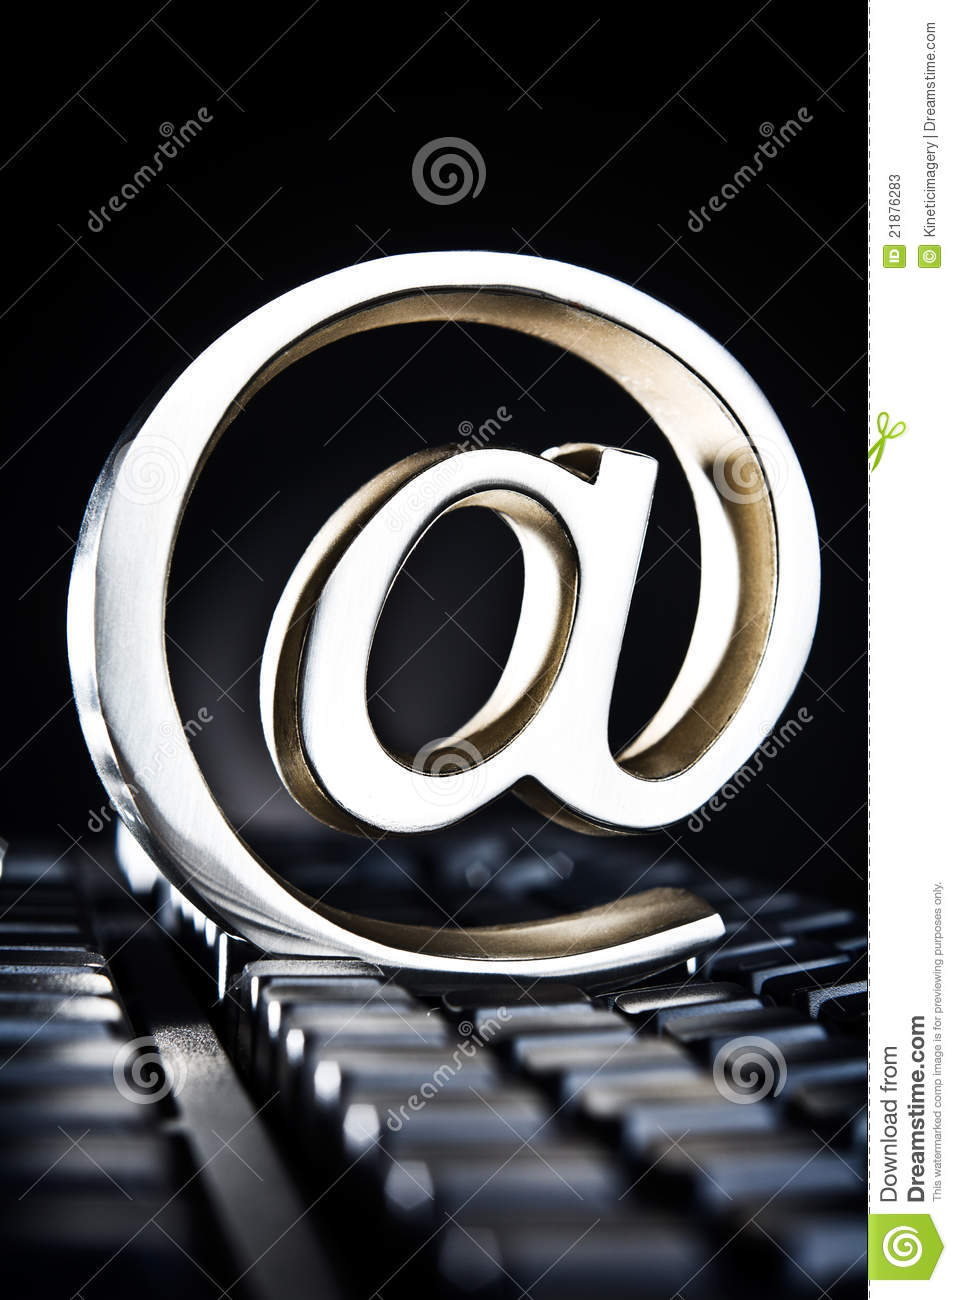 At Symbol Placed On Computer Keyboard Stock Image Image Of Still